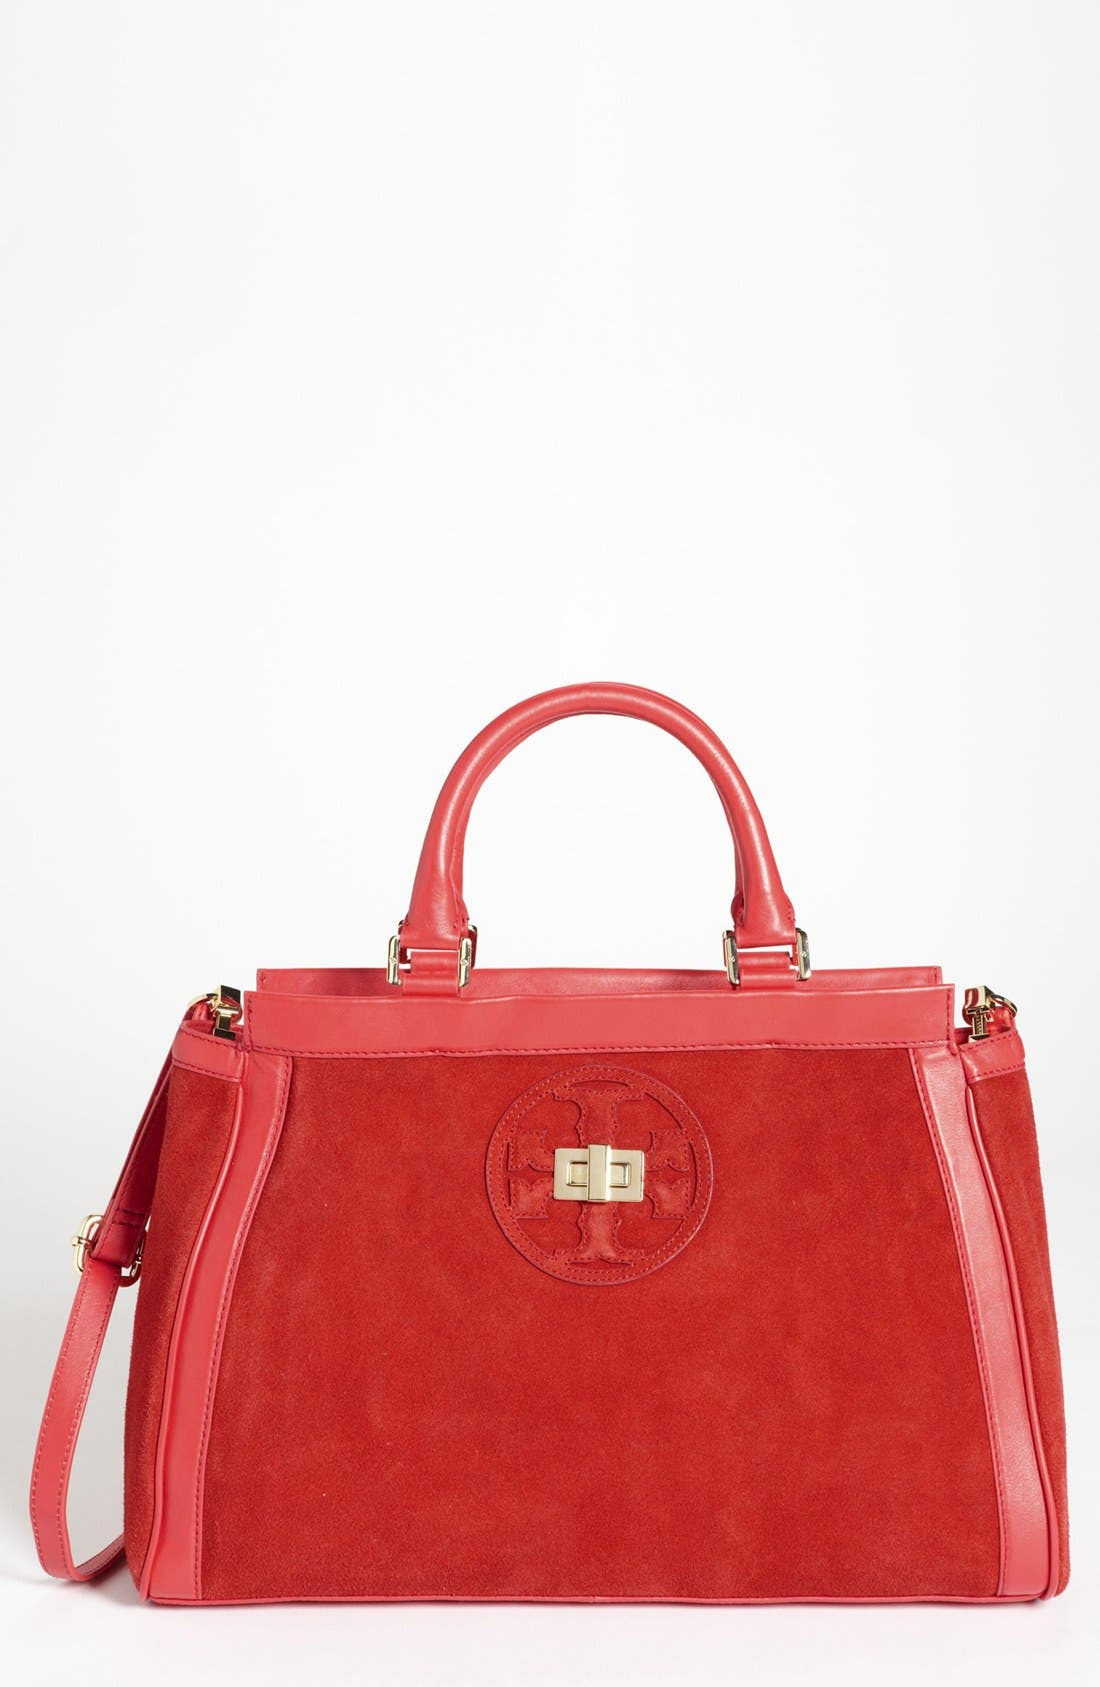 Alternate Image 1 Selected - Tory Burch 'Gloria' Satchel